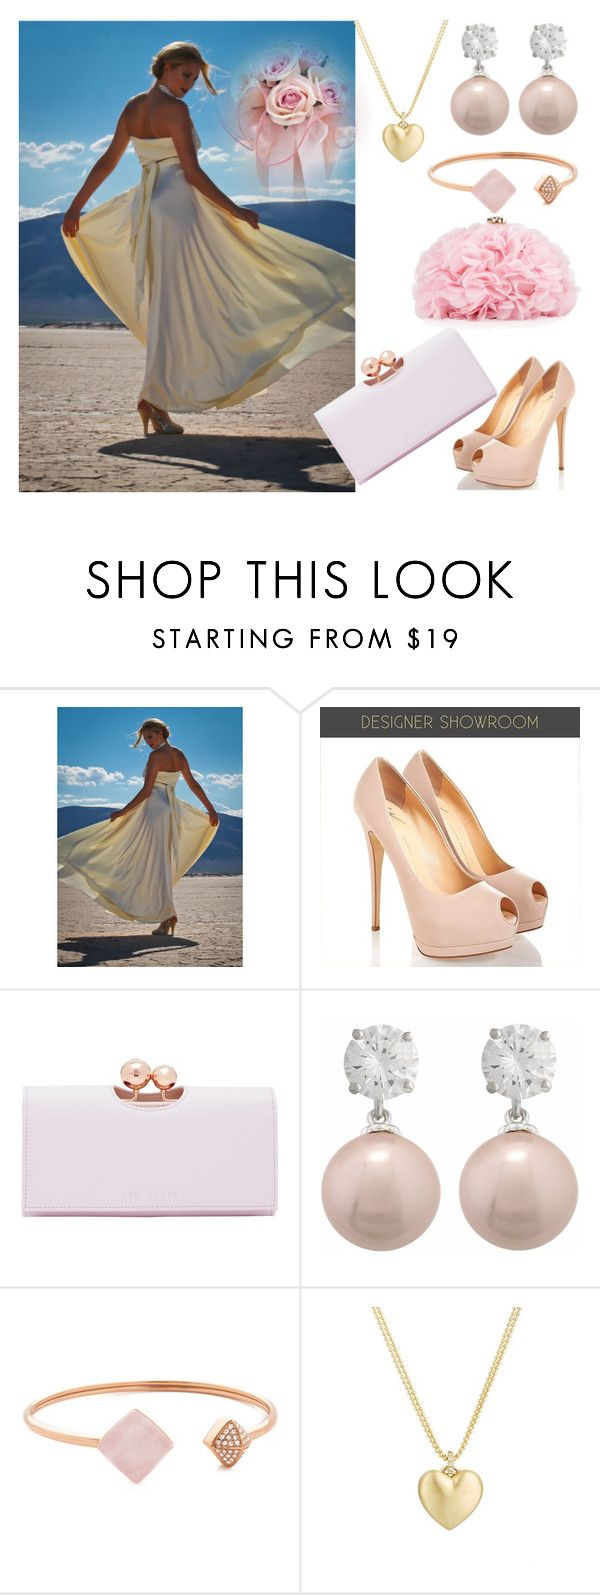 """""""Dress"""" by elma-993 ❤ liked on Polyvore featuring Ted Baker, Michael Kors, Finn and Betsey Johnson"""